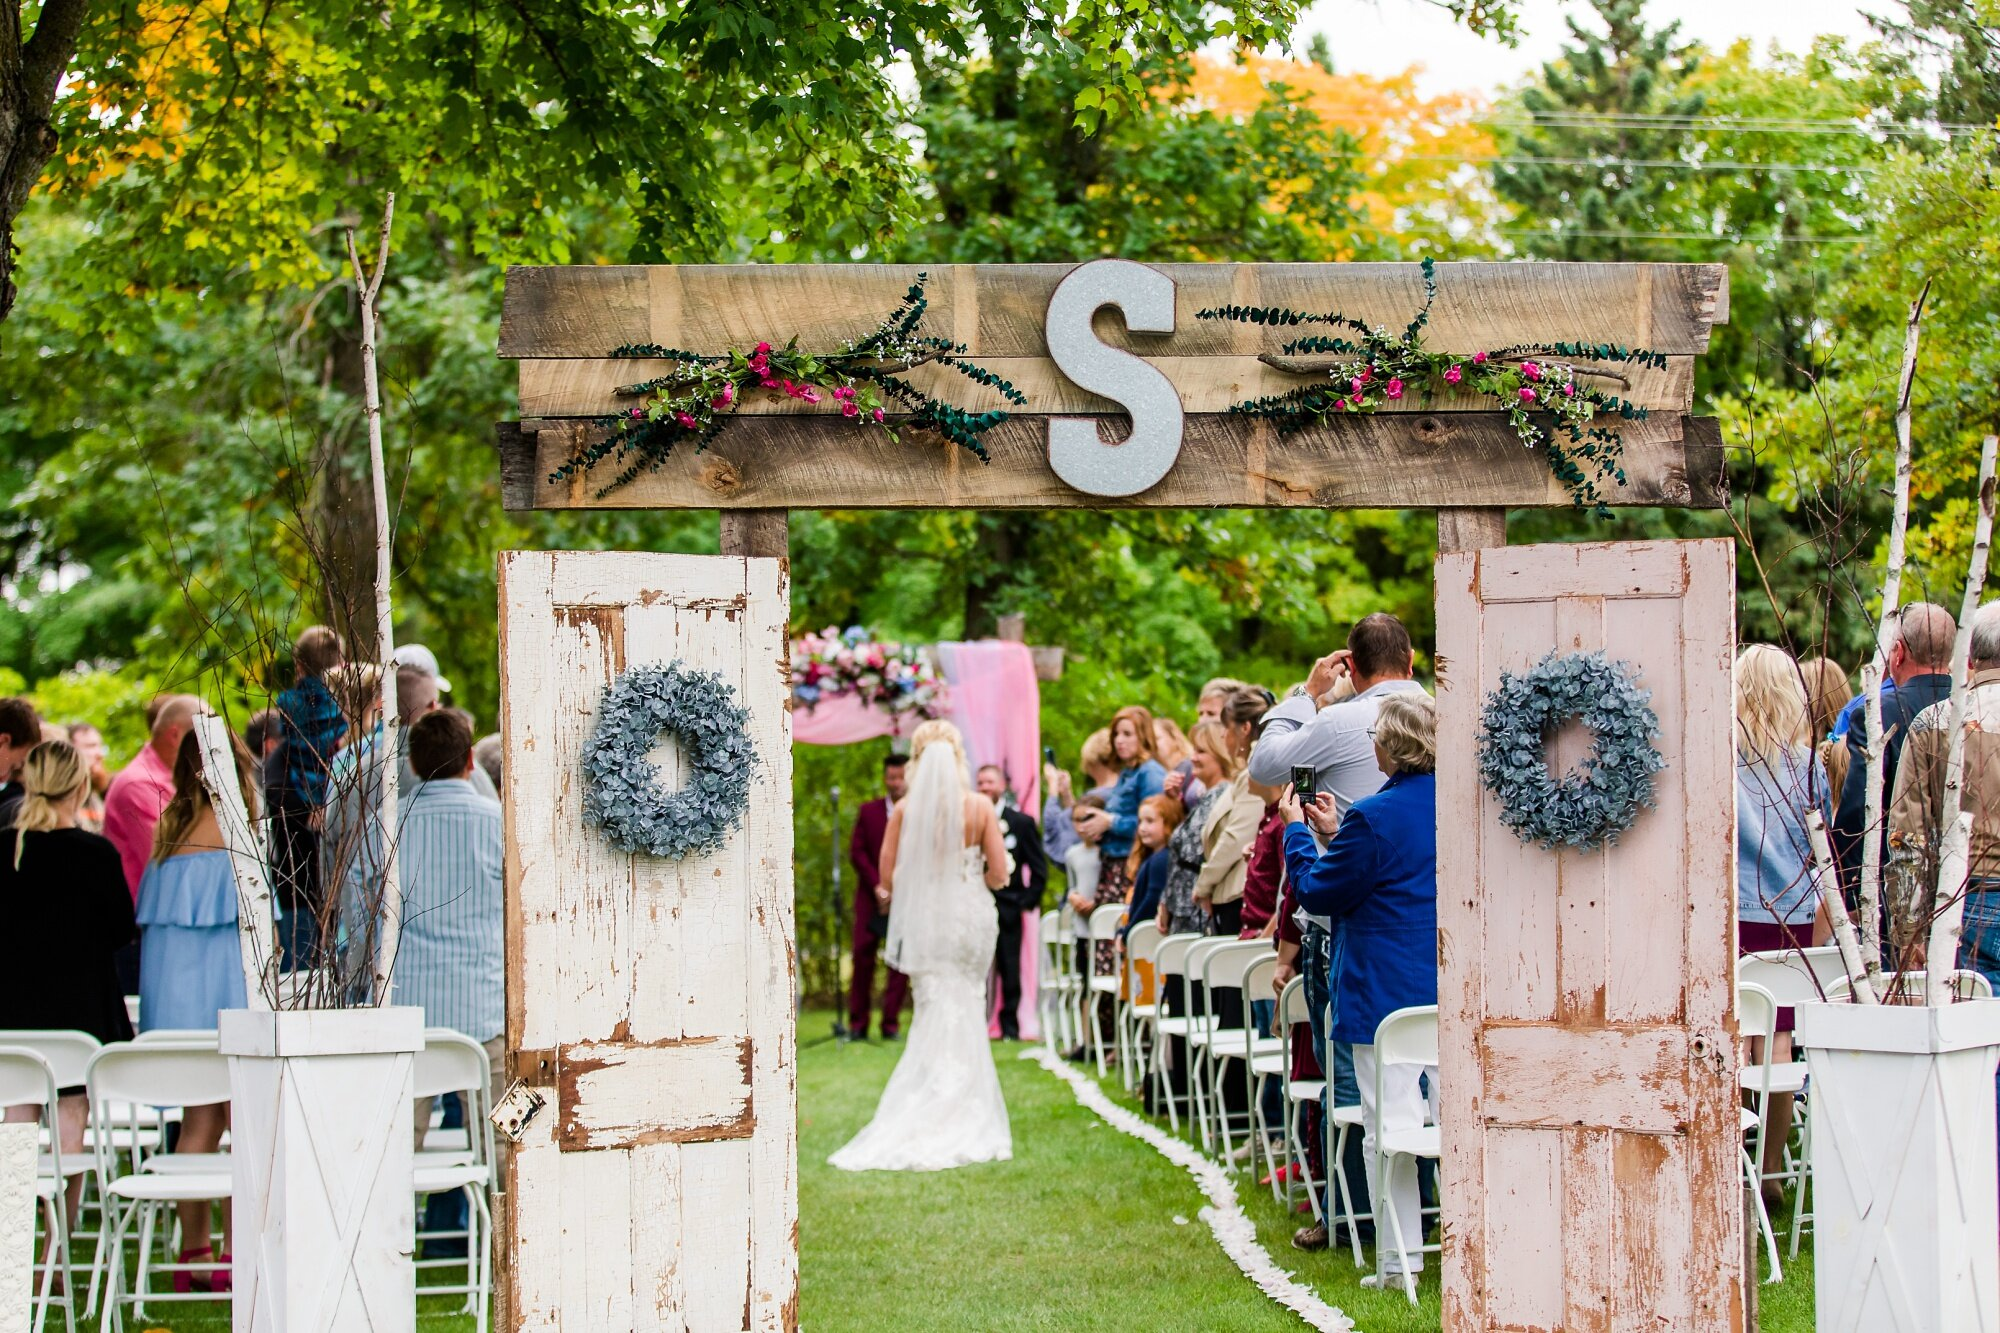 Amber Langerud Photography_Eagle Lake Rustic Styled Outdoor Wedding in Minnesota_6870.jpg